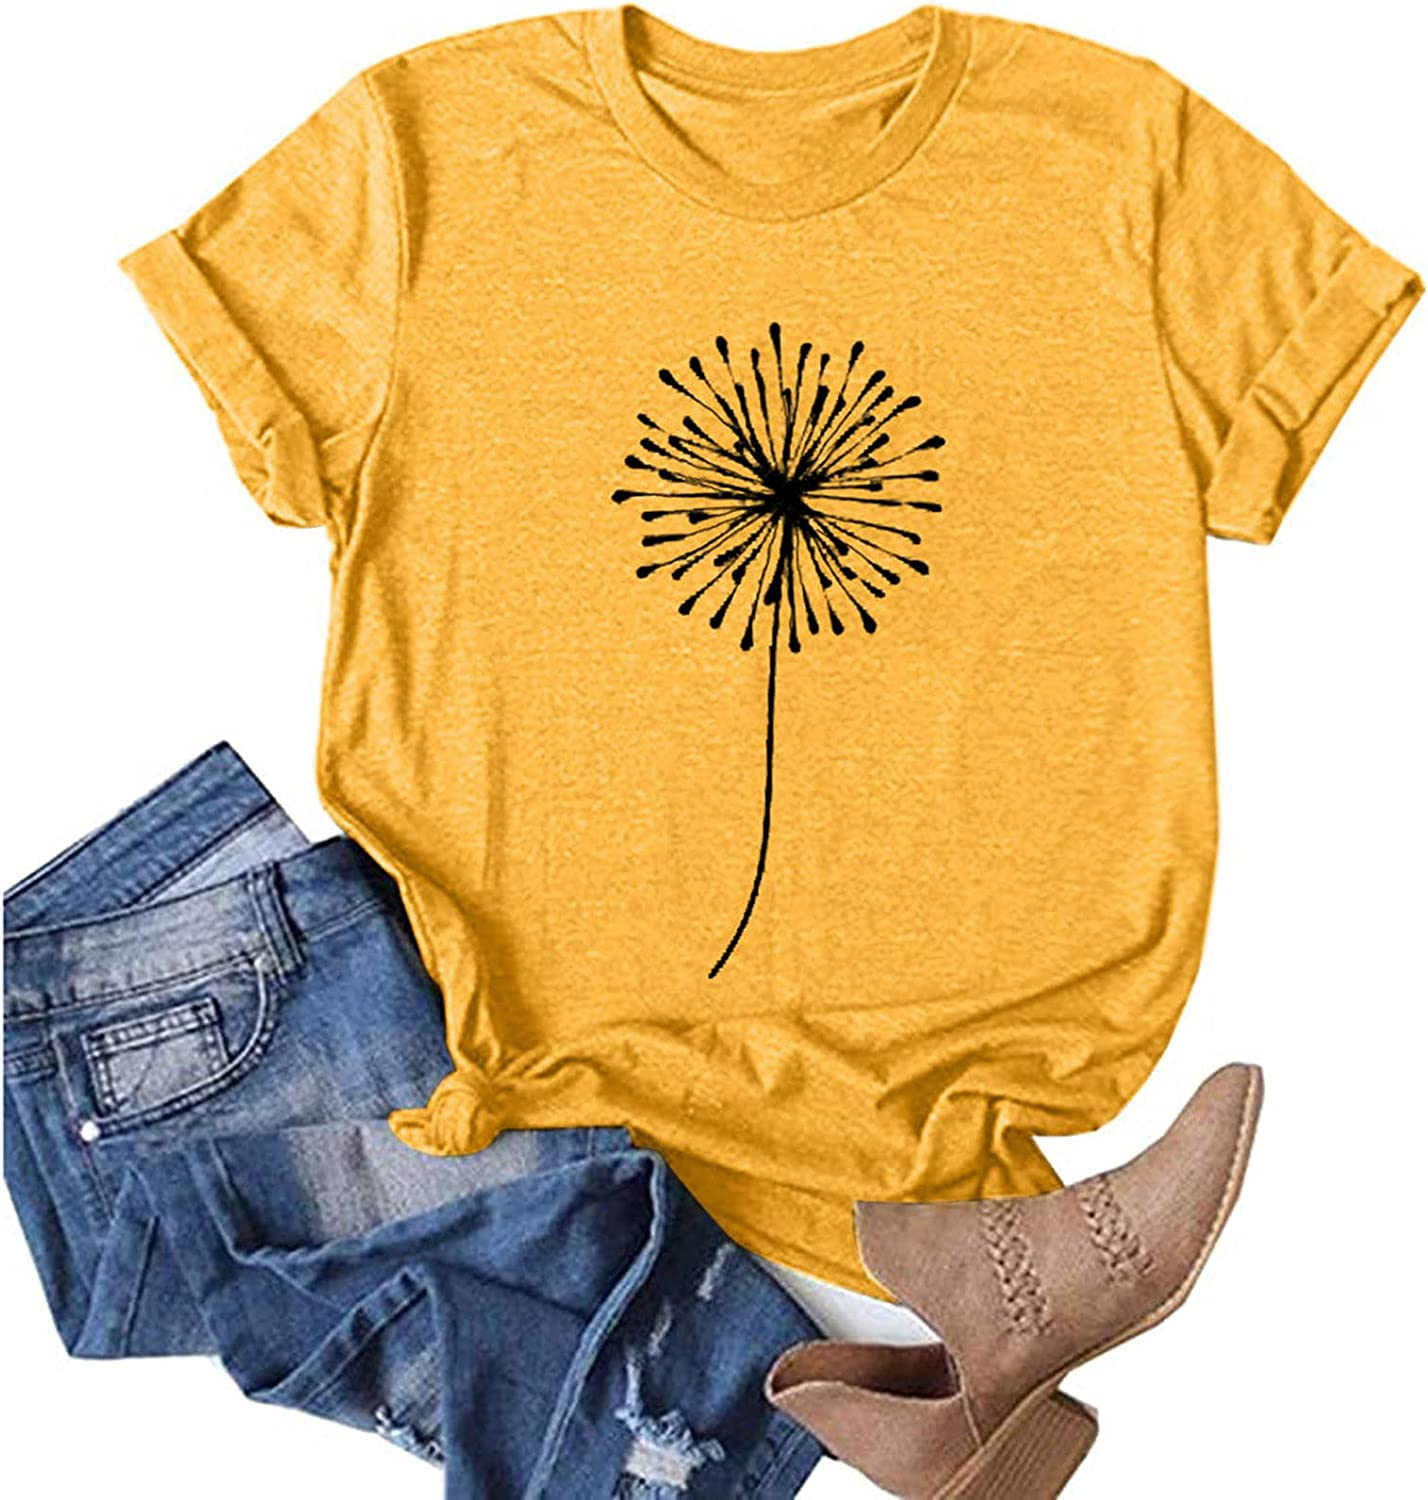 AODONG T-Shirts for Women,Women's Summer Tops Casual Dandelion Printed Loose Blouses Tunic Tees Funny Graphic T-Shirts